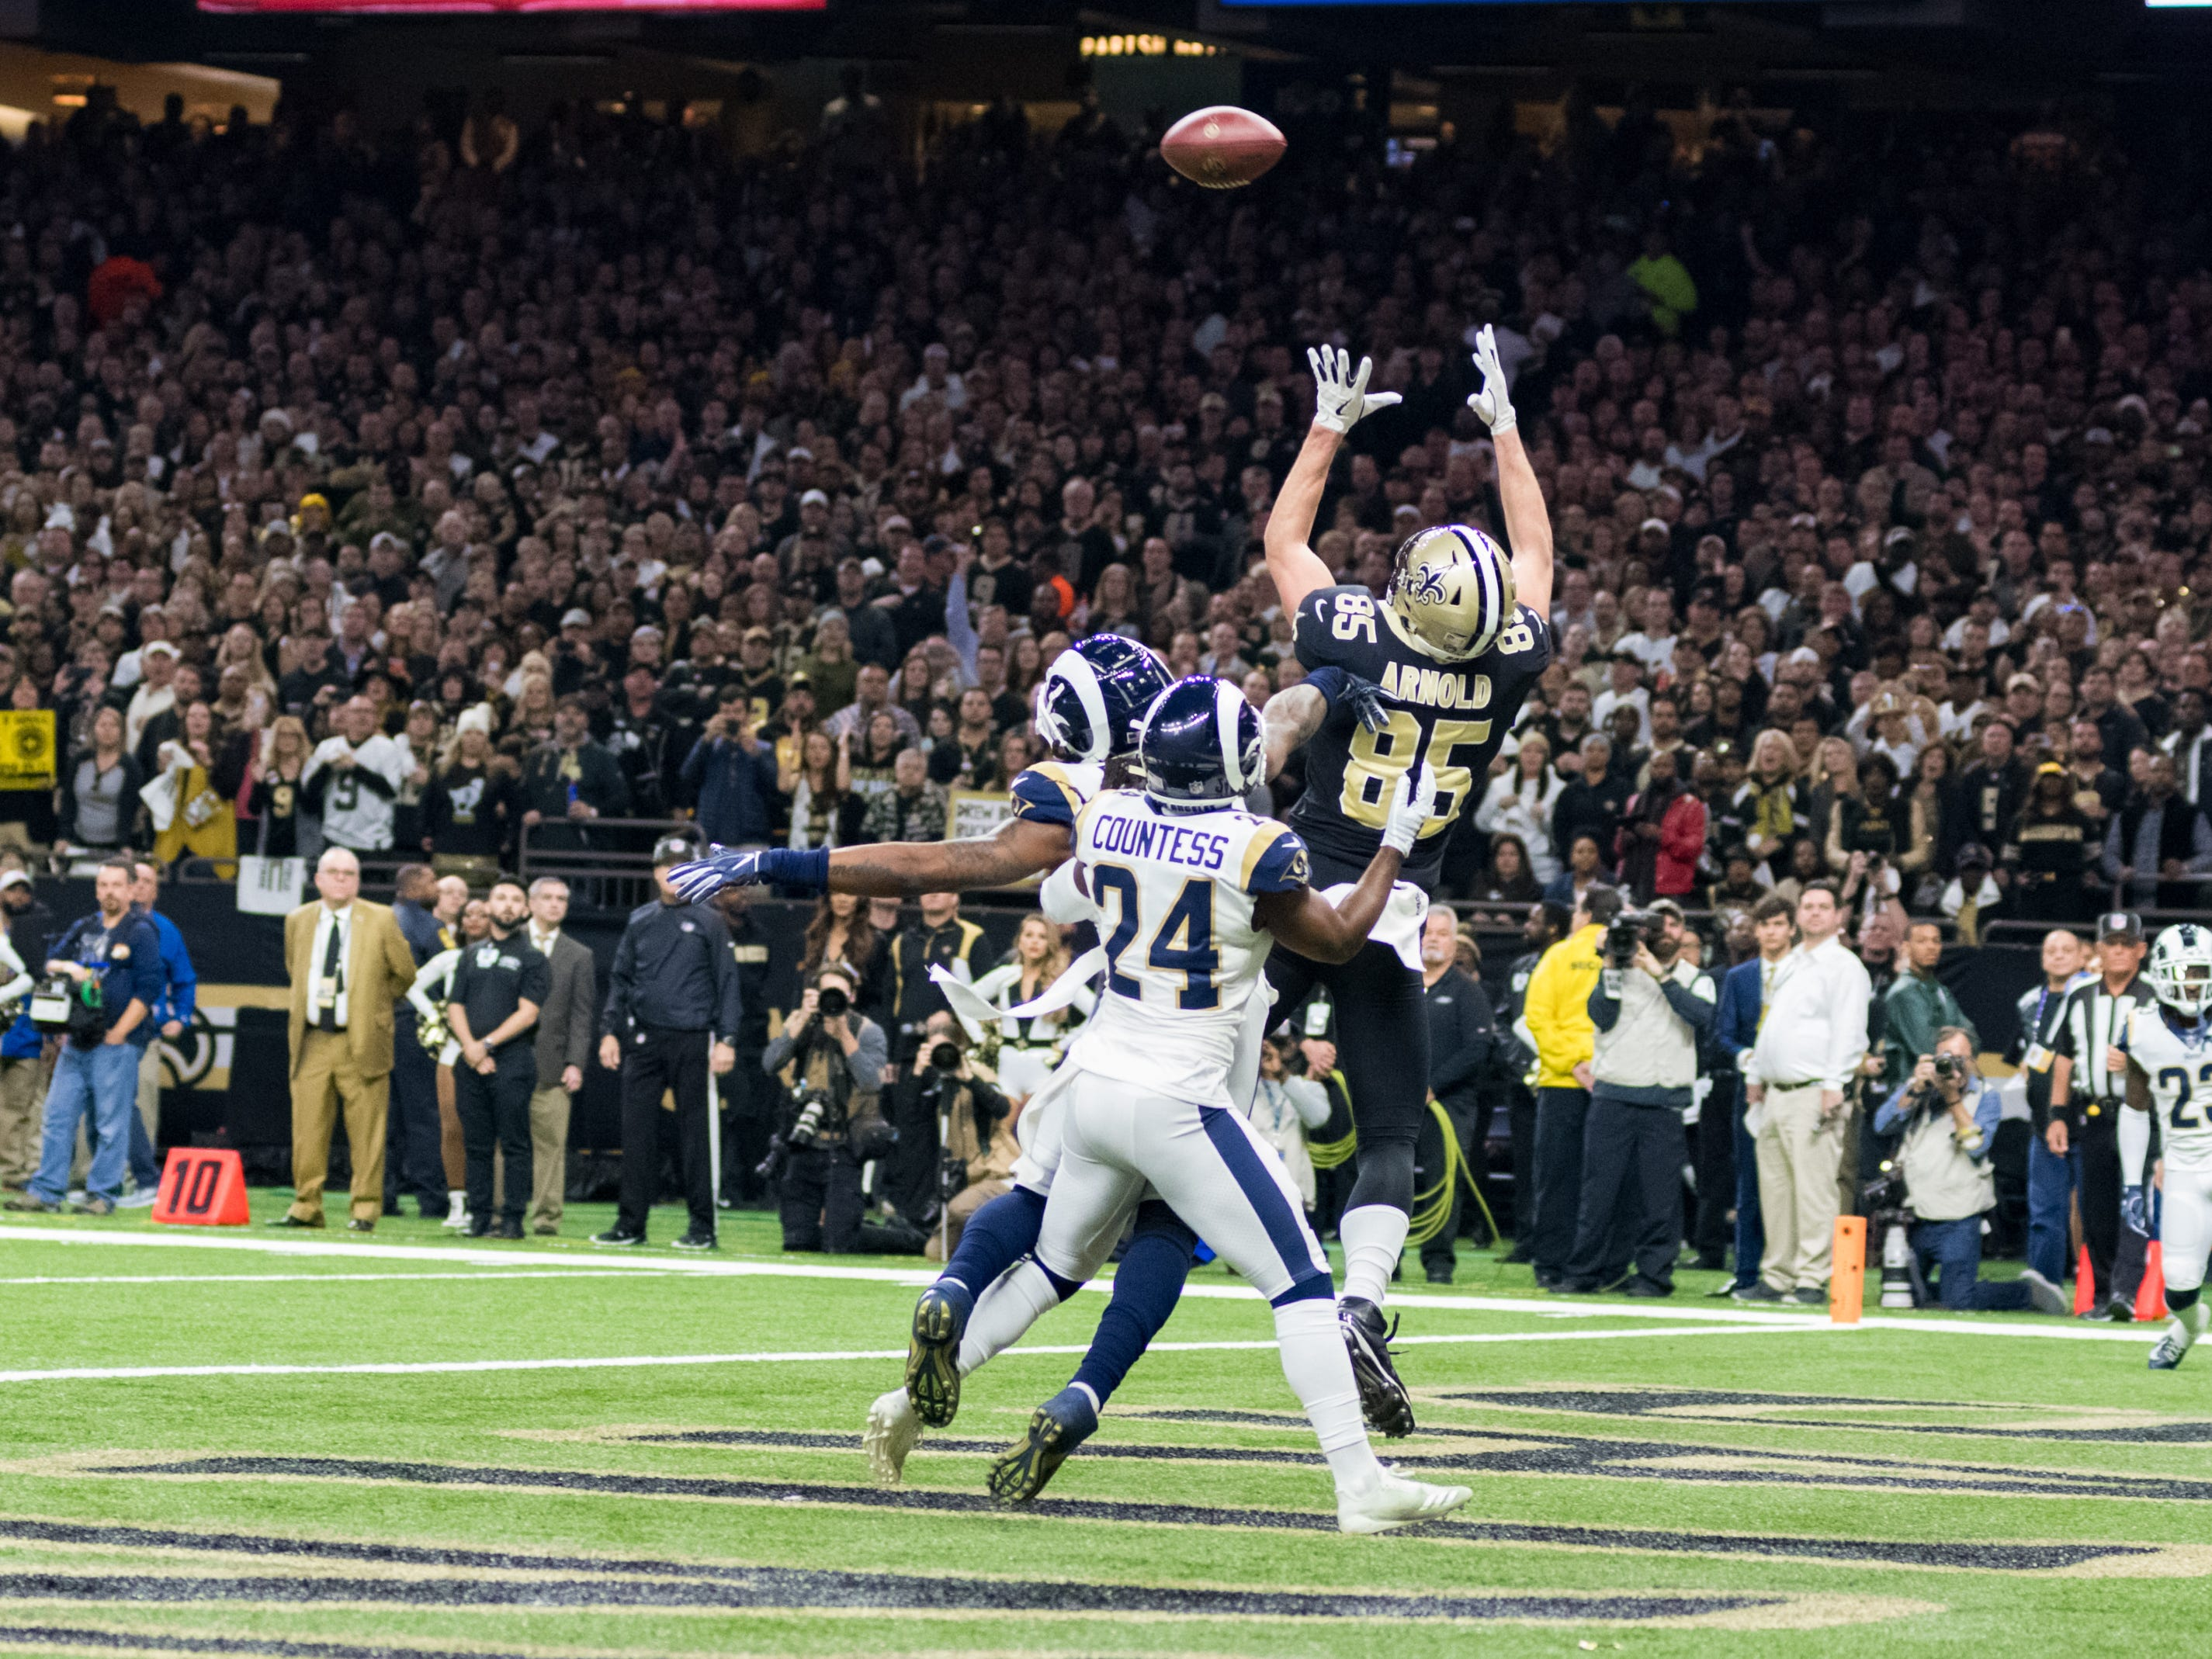 Saints tight end Dan Arnold goes up for a pass in the endzone during the NFC Championship playoff football game between the New Orleans Saints and the Los Angeles Rams at the Mercedes-Benz Superdome in New Orleans. Sunday, Jan. 20, 2019.